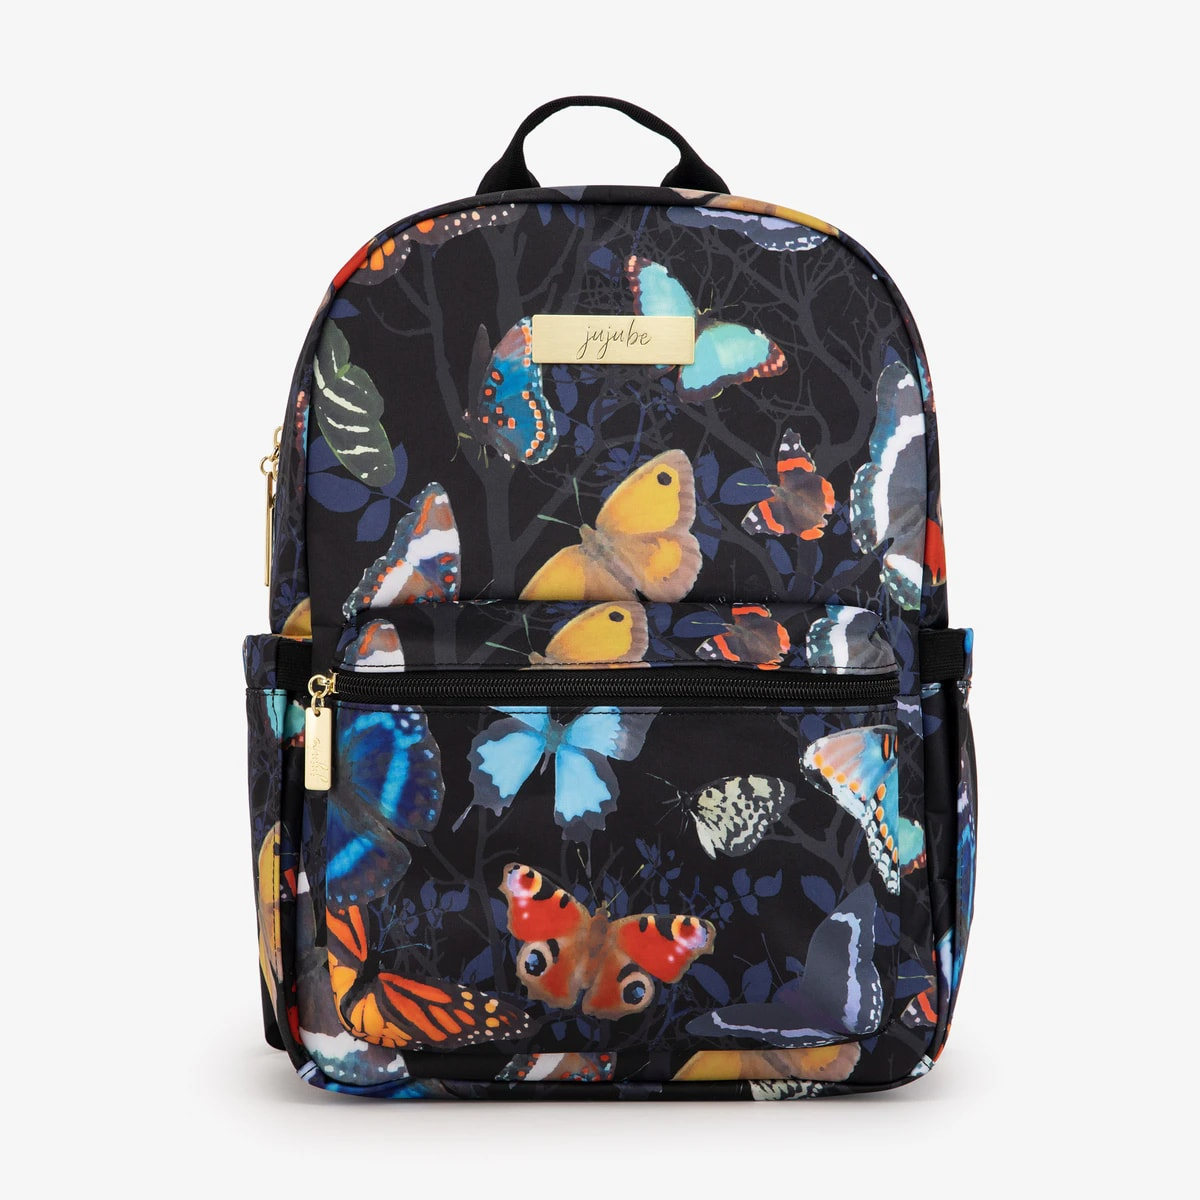 Ju Ju Be - Midi Backpack